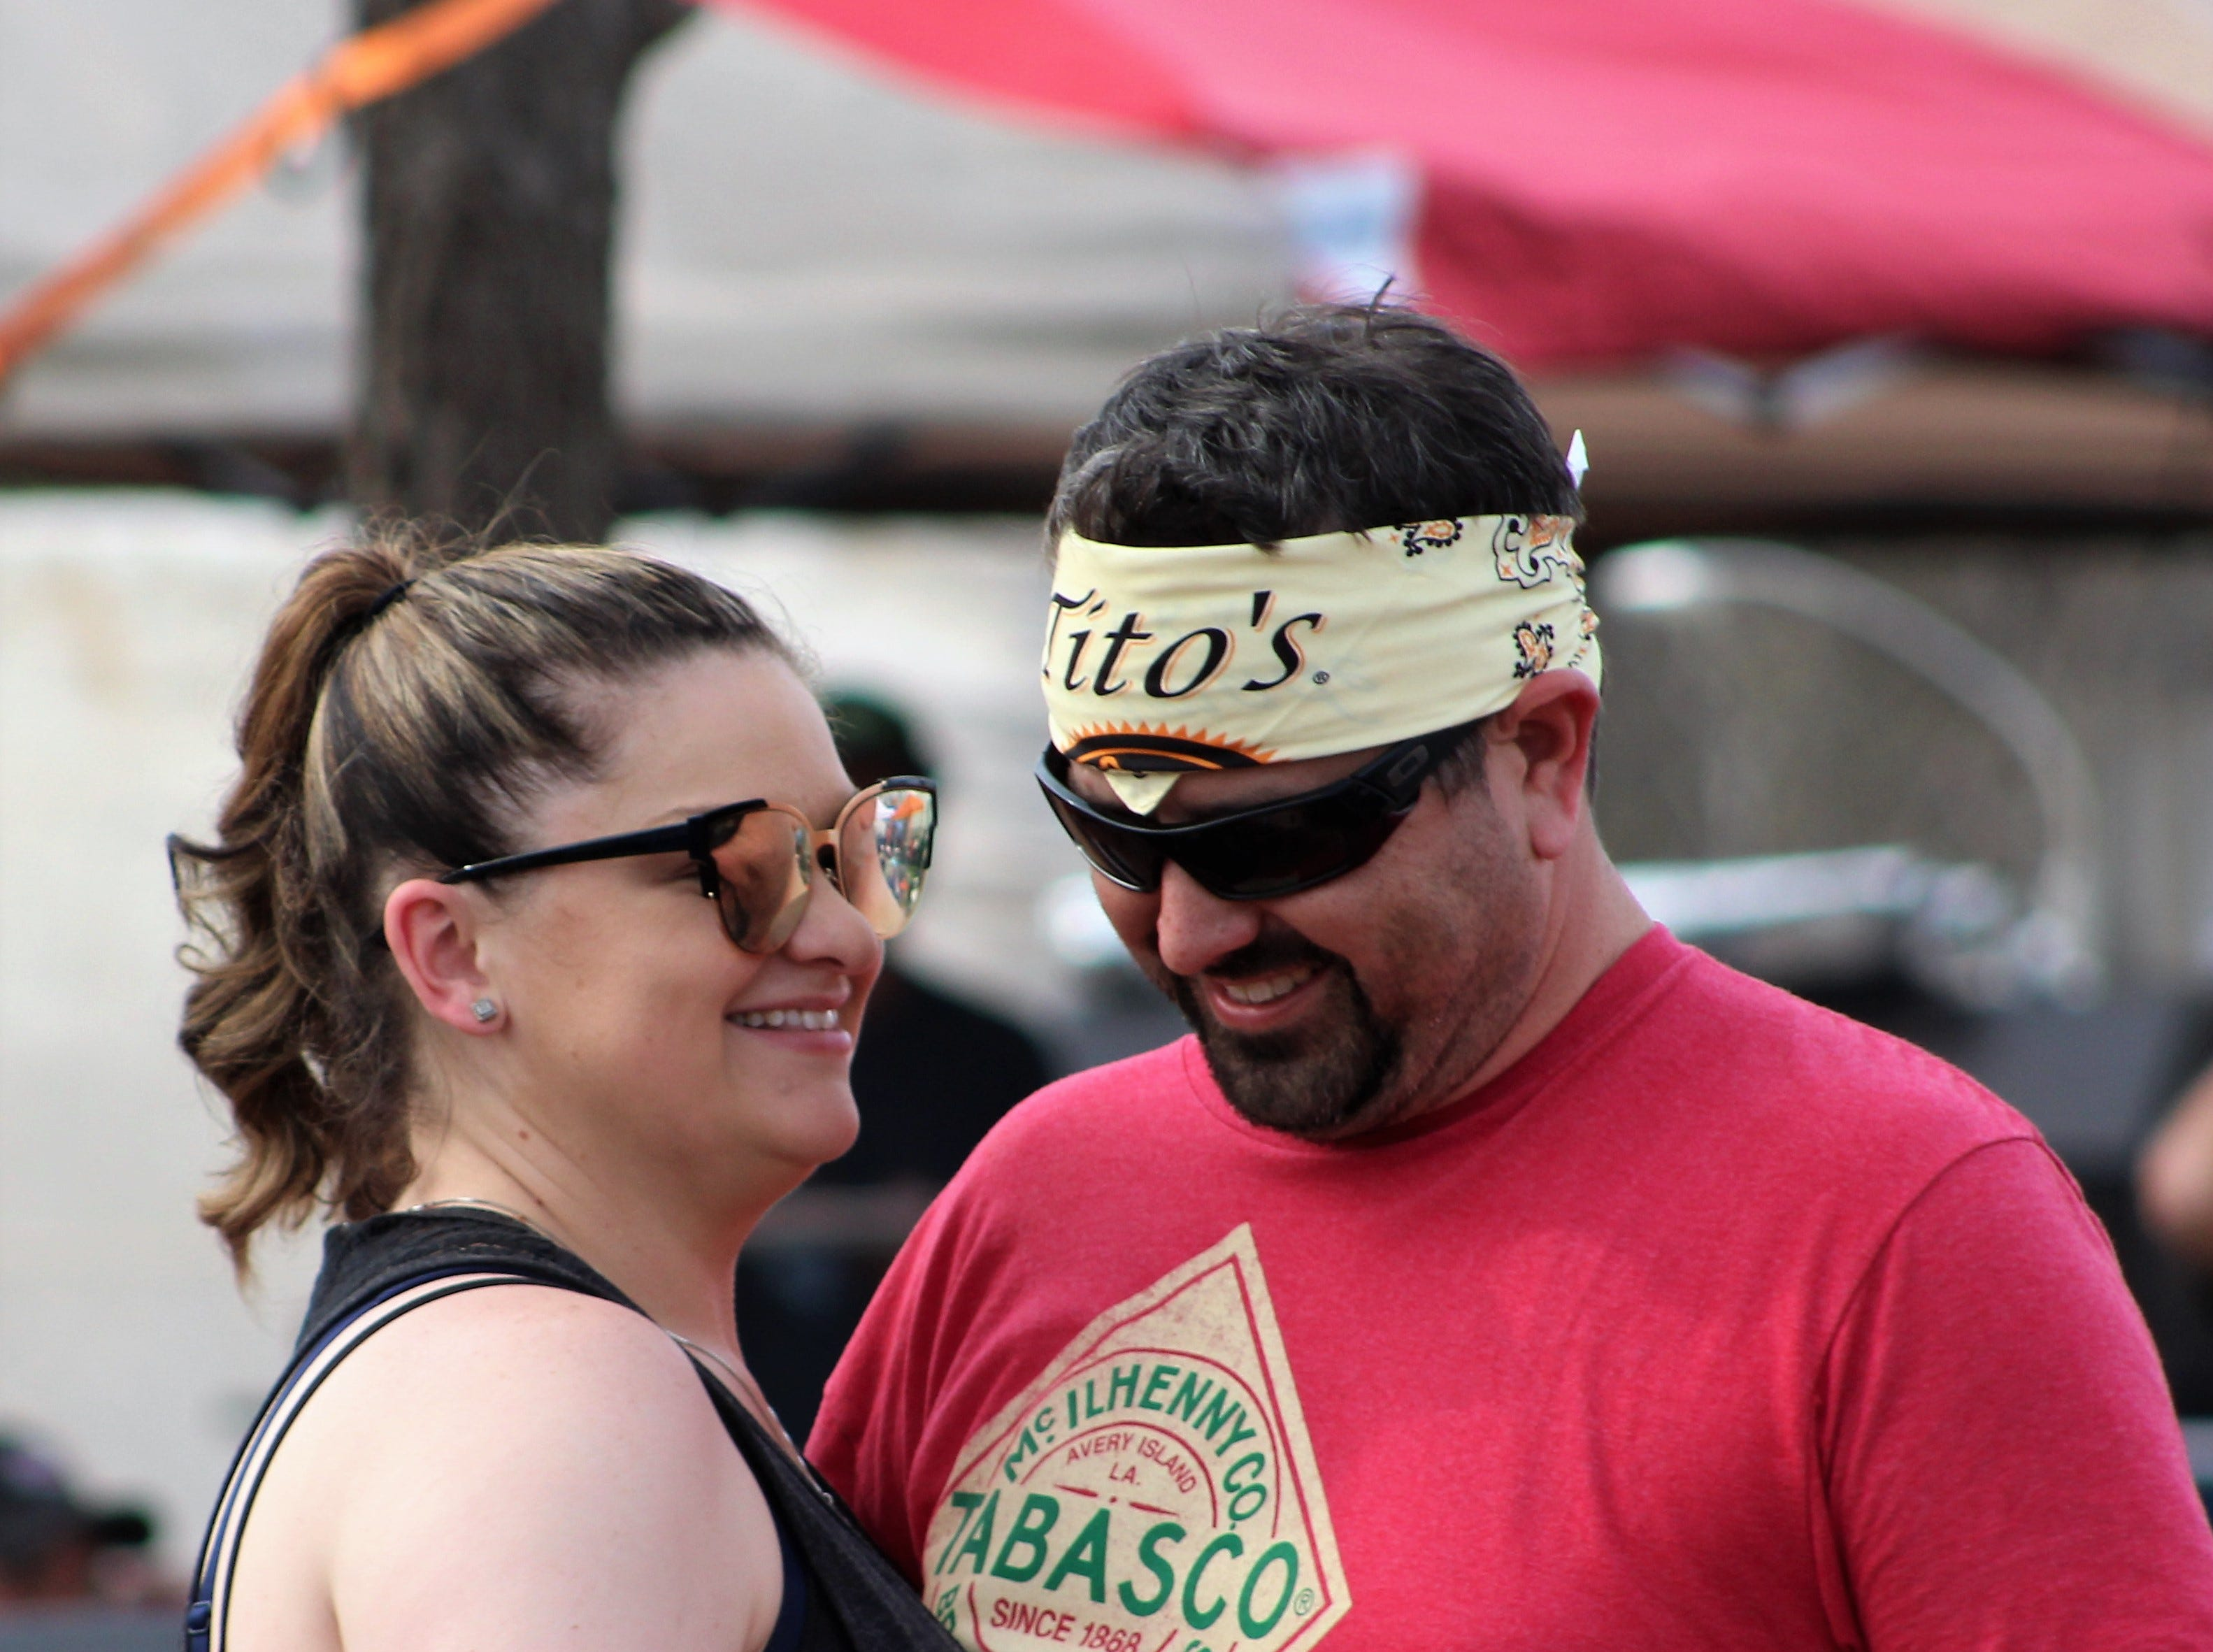 John Scott two-steps with his wife, Kendra, Saturday afternoon March 23, 2019, at the 9th Outlaws & Legends Music Festival.